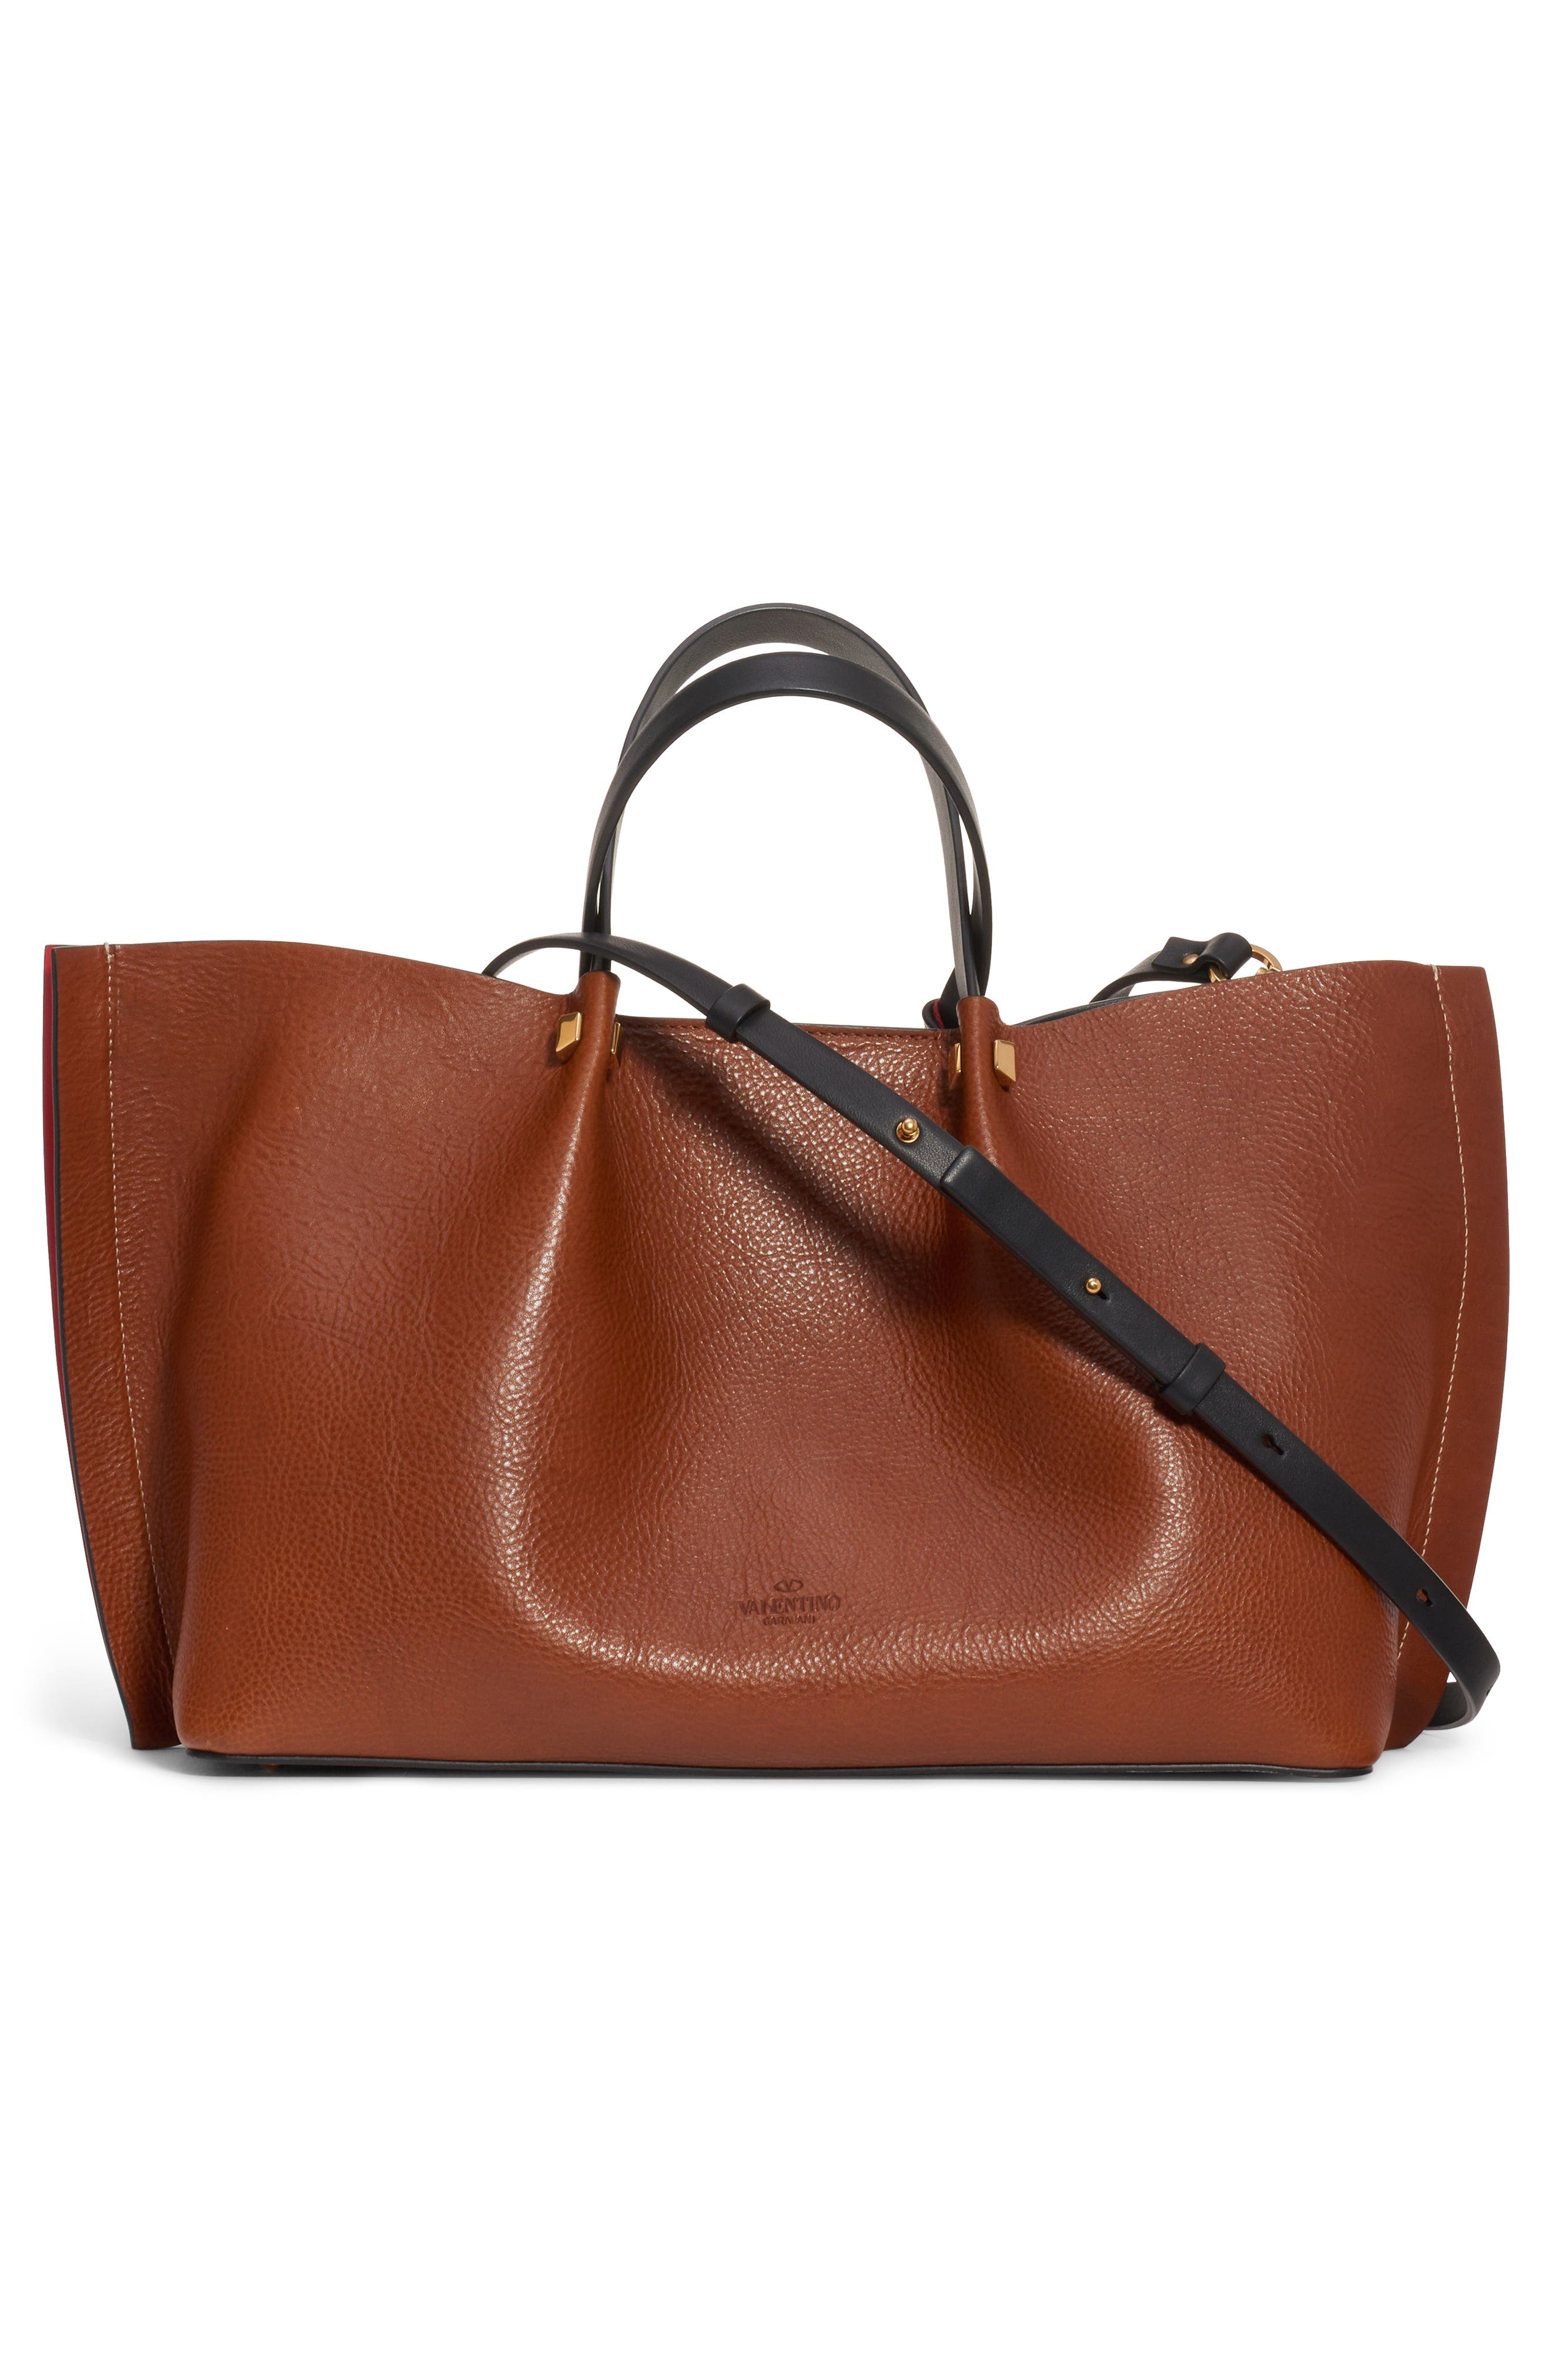 VALENTINO GARAVANI,                             Medium Go Logo Leather Tote,                             Alternate thumbnail 2, color,                             TAN/ NERO/ ROUGE PUR